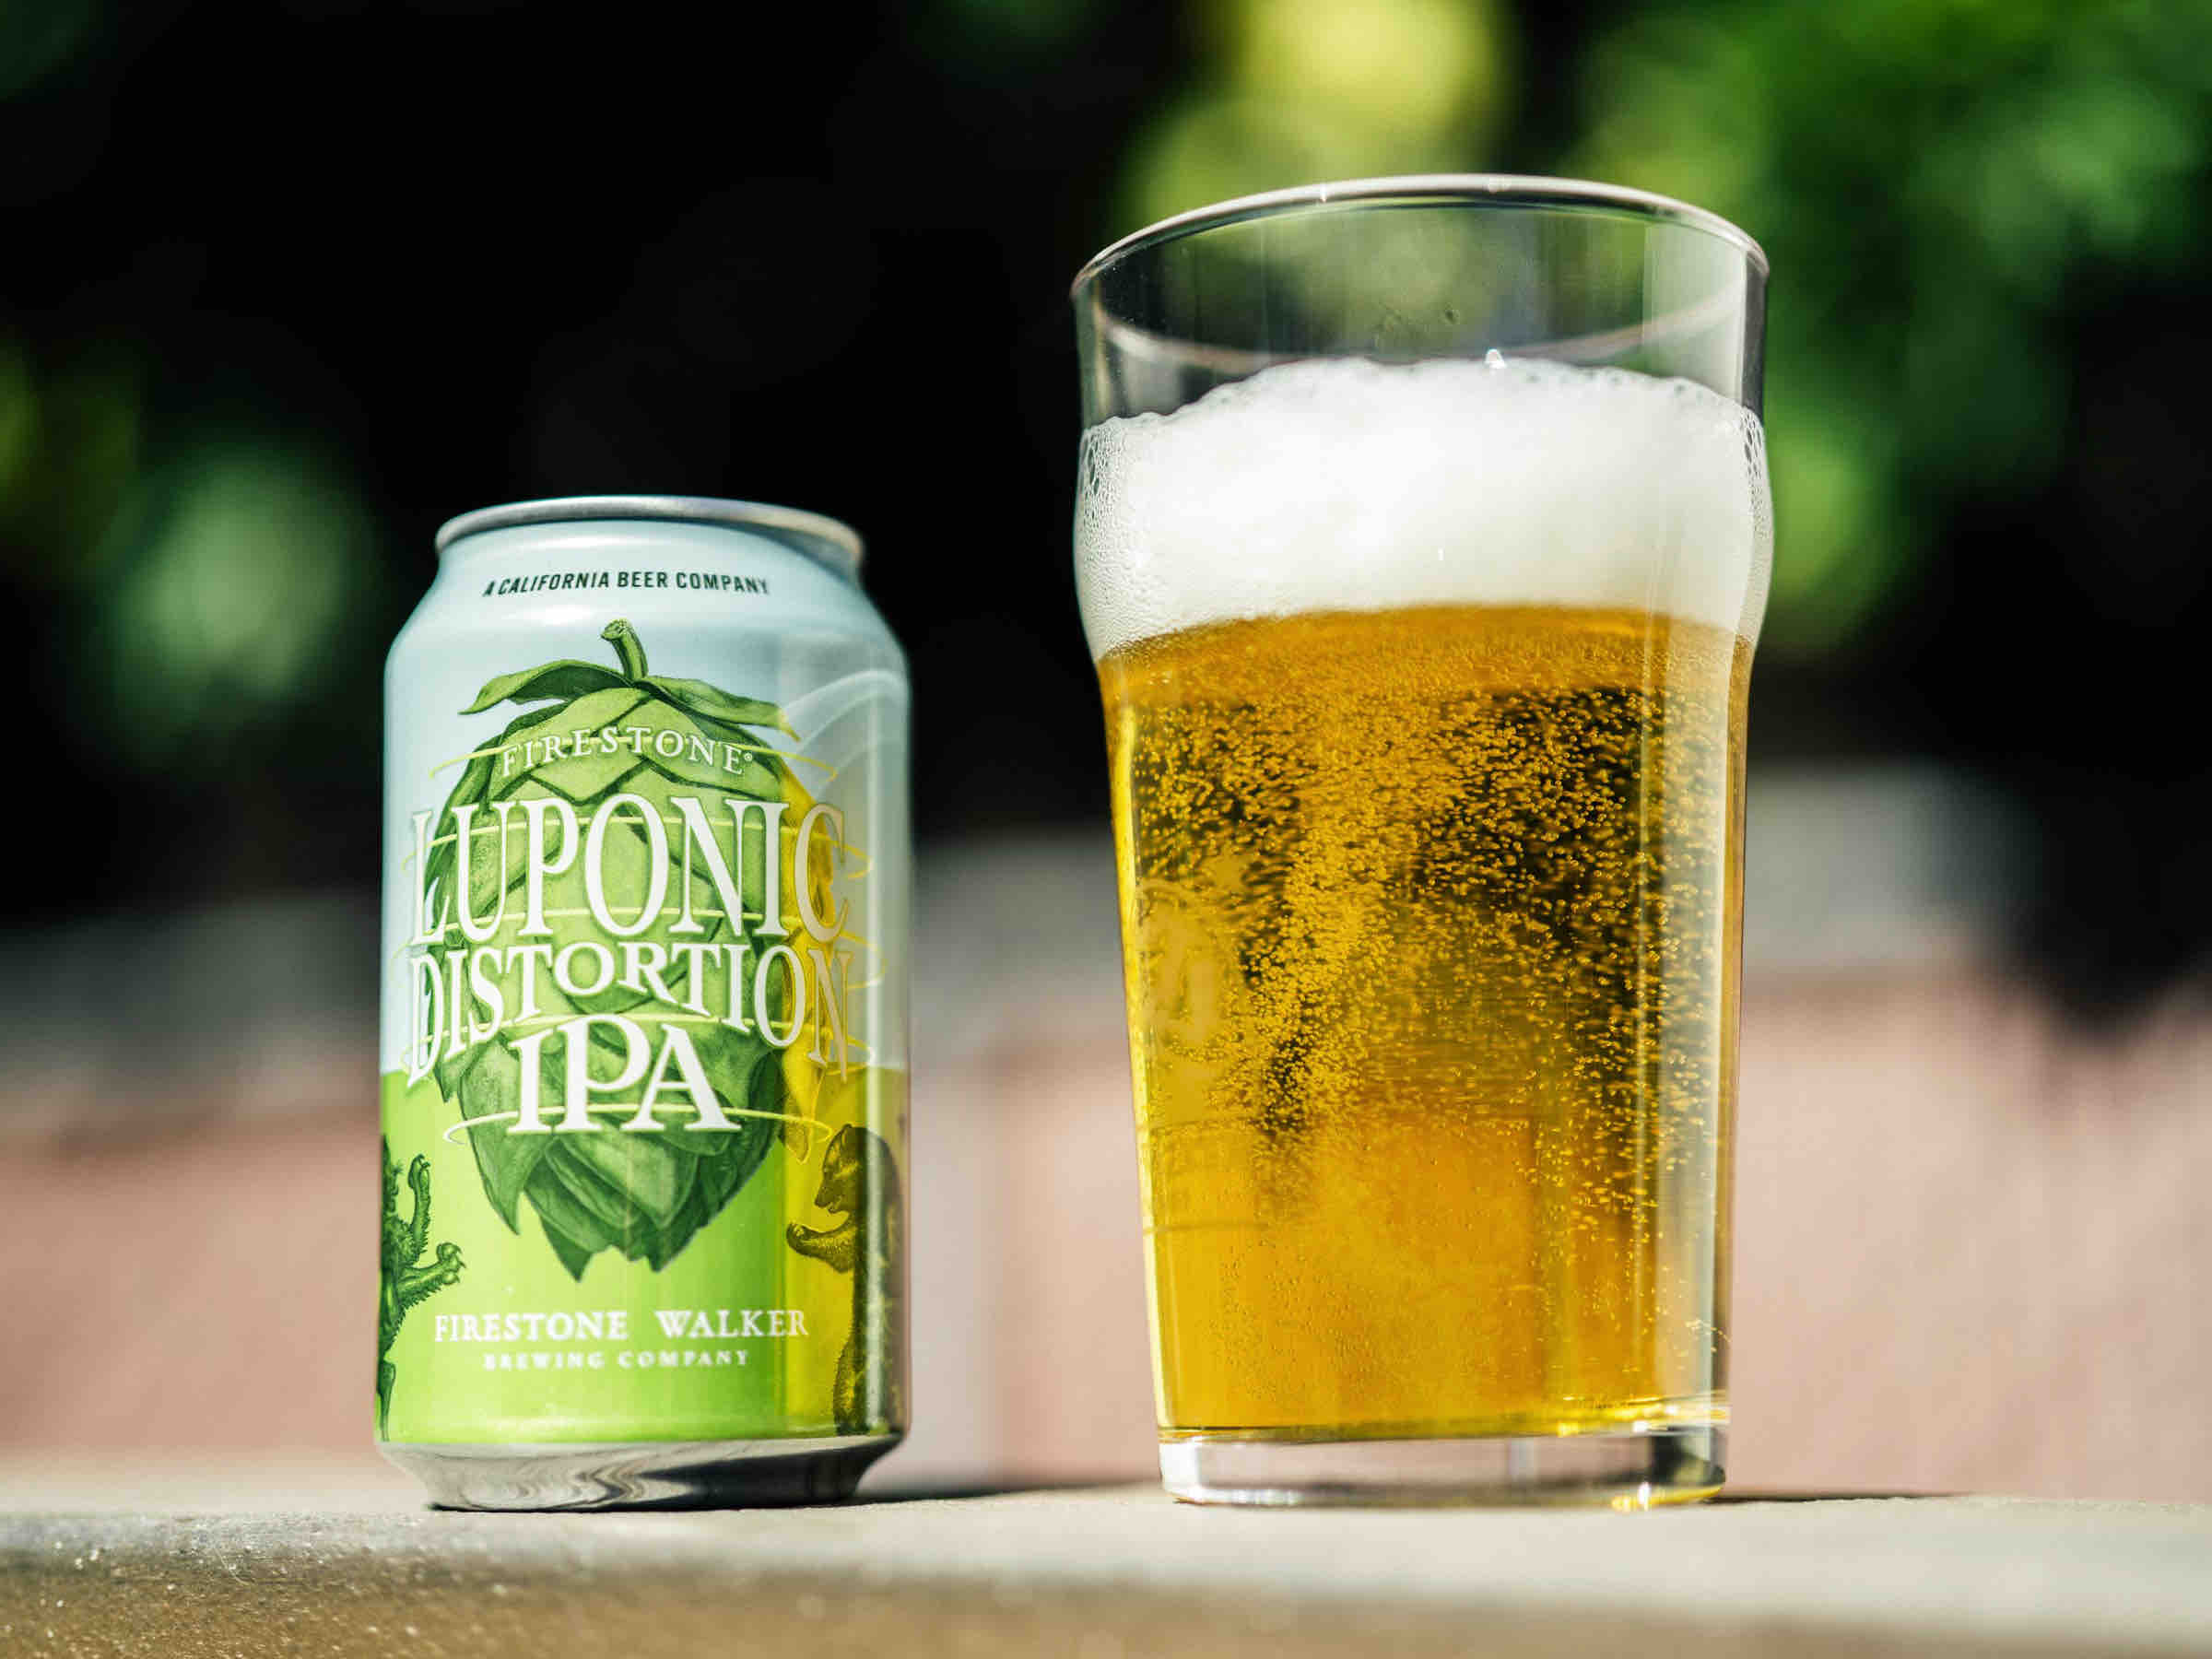 image of Luponic Distortion IPA No. 018 courtesy of Firestone Walker Brewwing